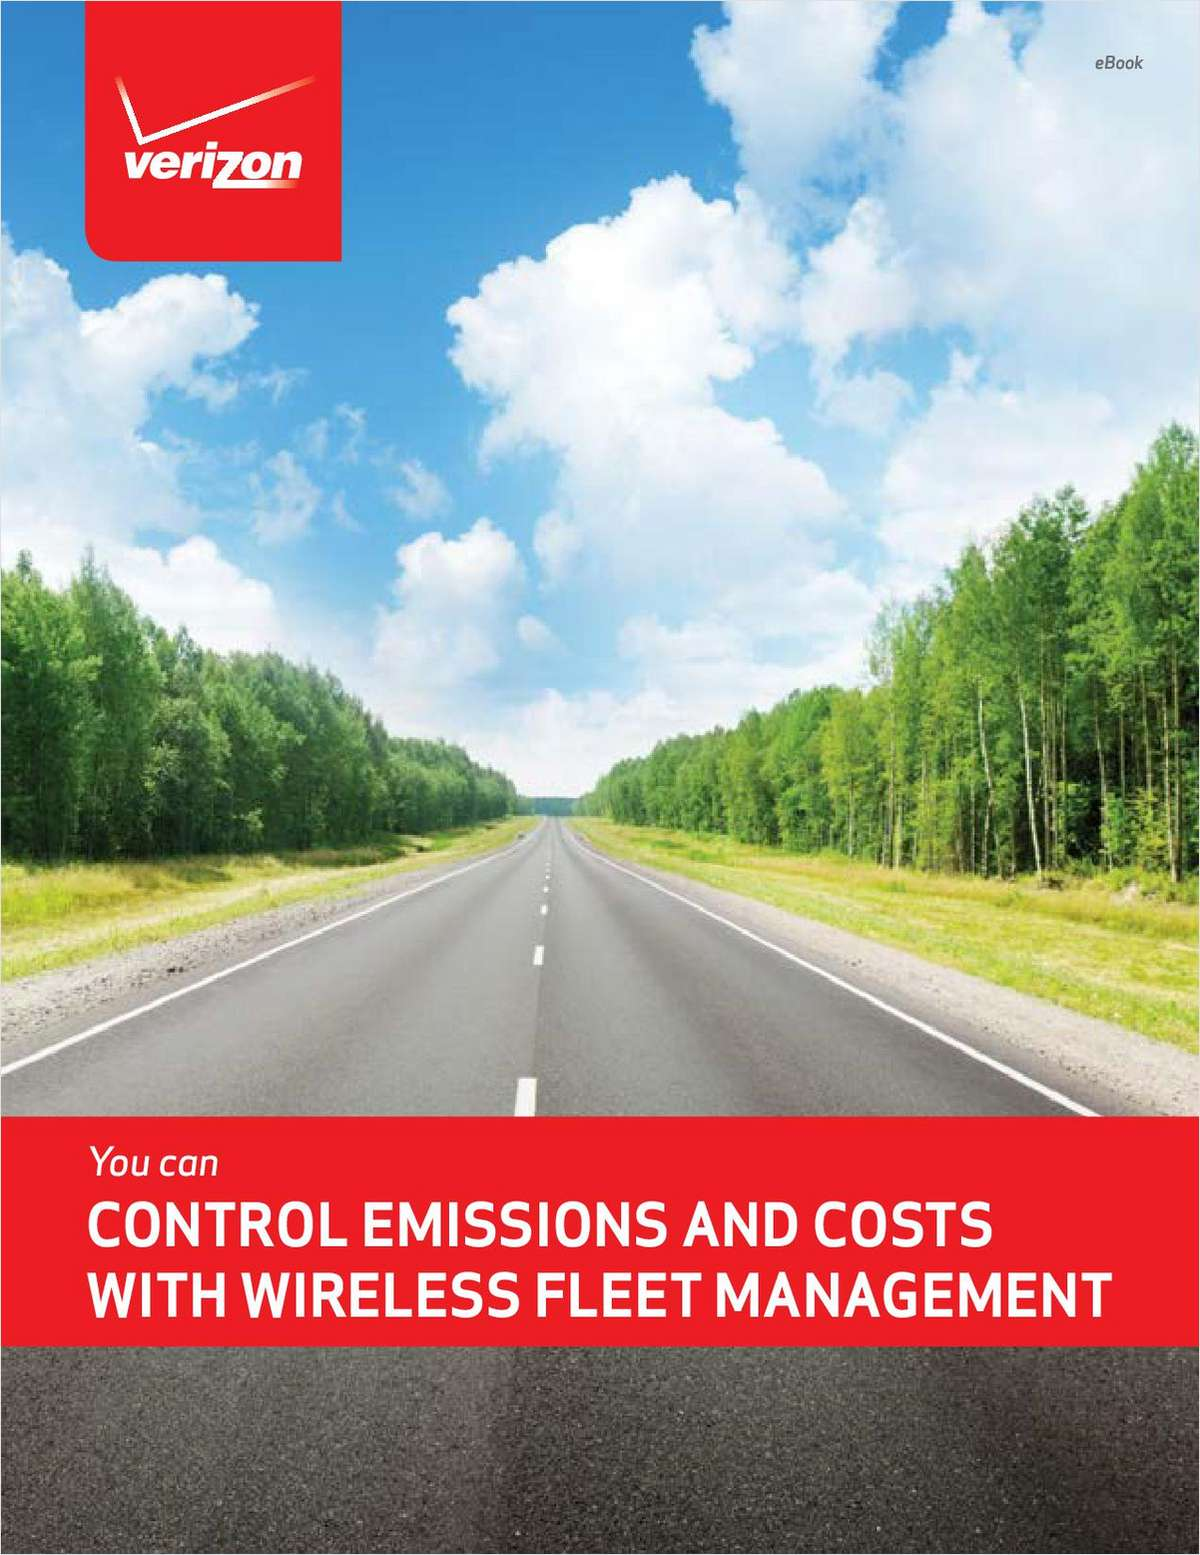 6 Steps to Control Emissions & Costs with Wireless Fleet Management